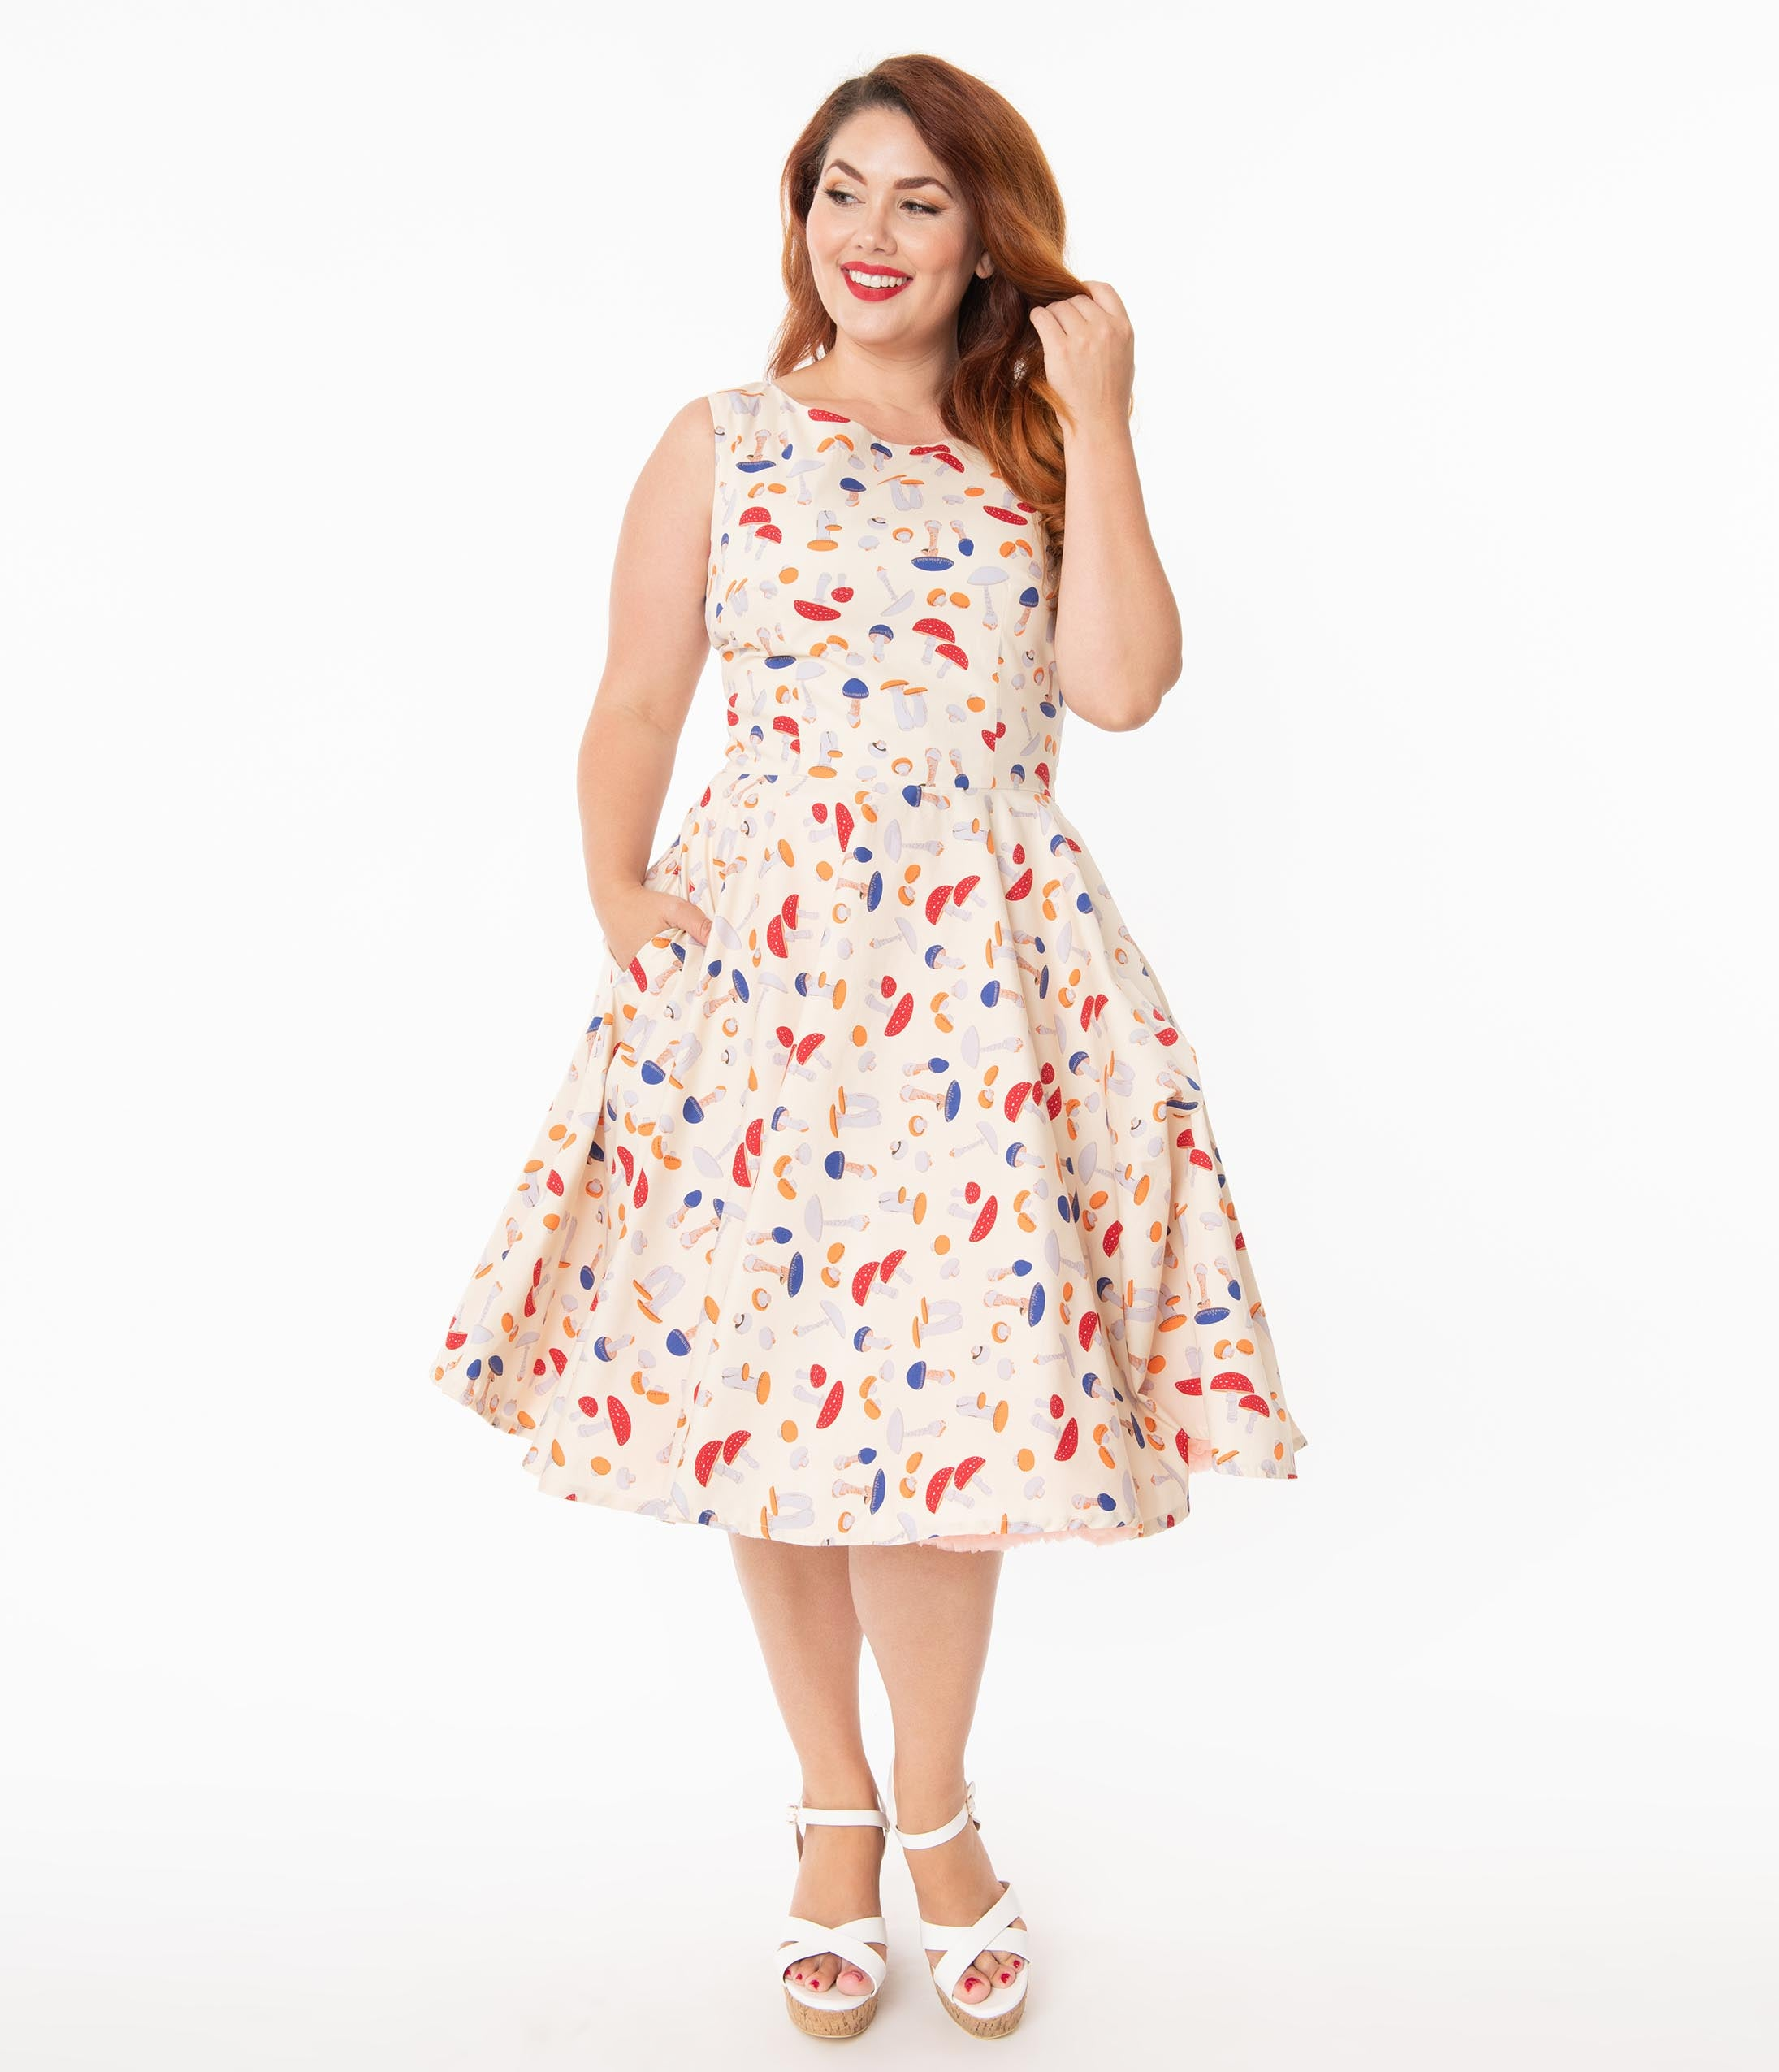 60s 70s Plus Size Dresses, Clothing, Costumes Plus Size Retro Style Cream  Mushroom Print Candice Swing Dress $78.00 AT vintagedancer.com